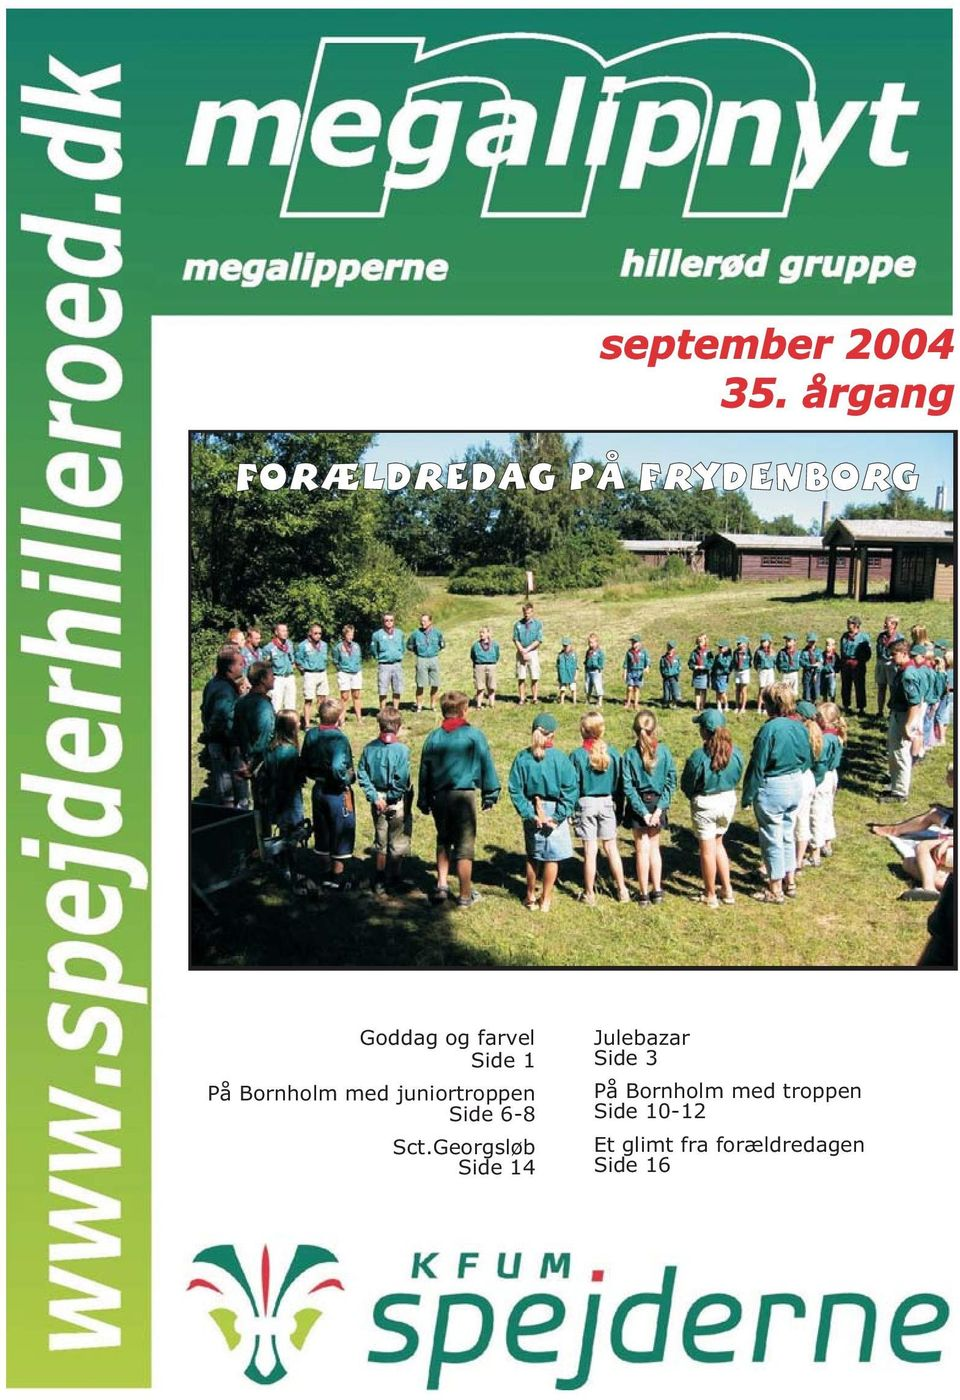 Georgsløb Side 14 Julebazar Side 3 På